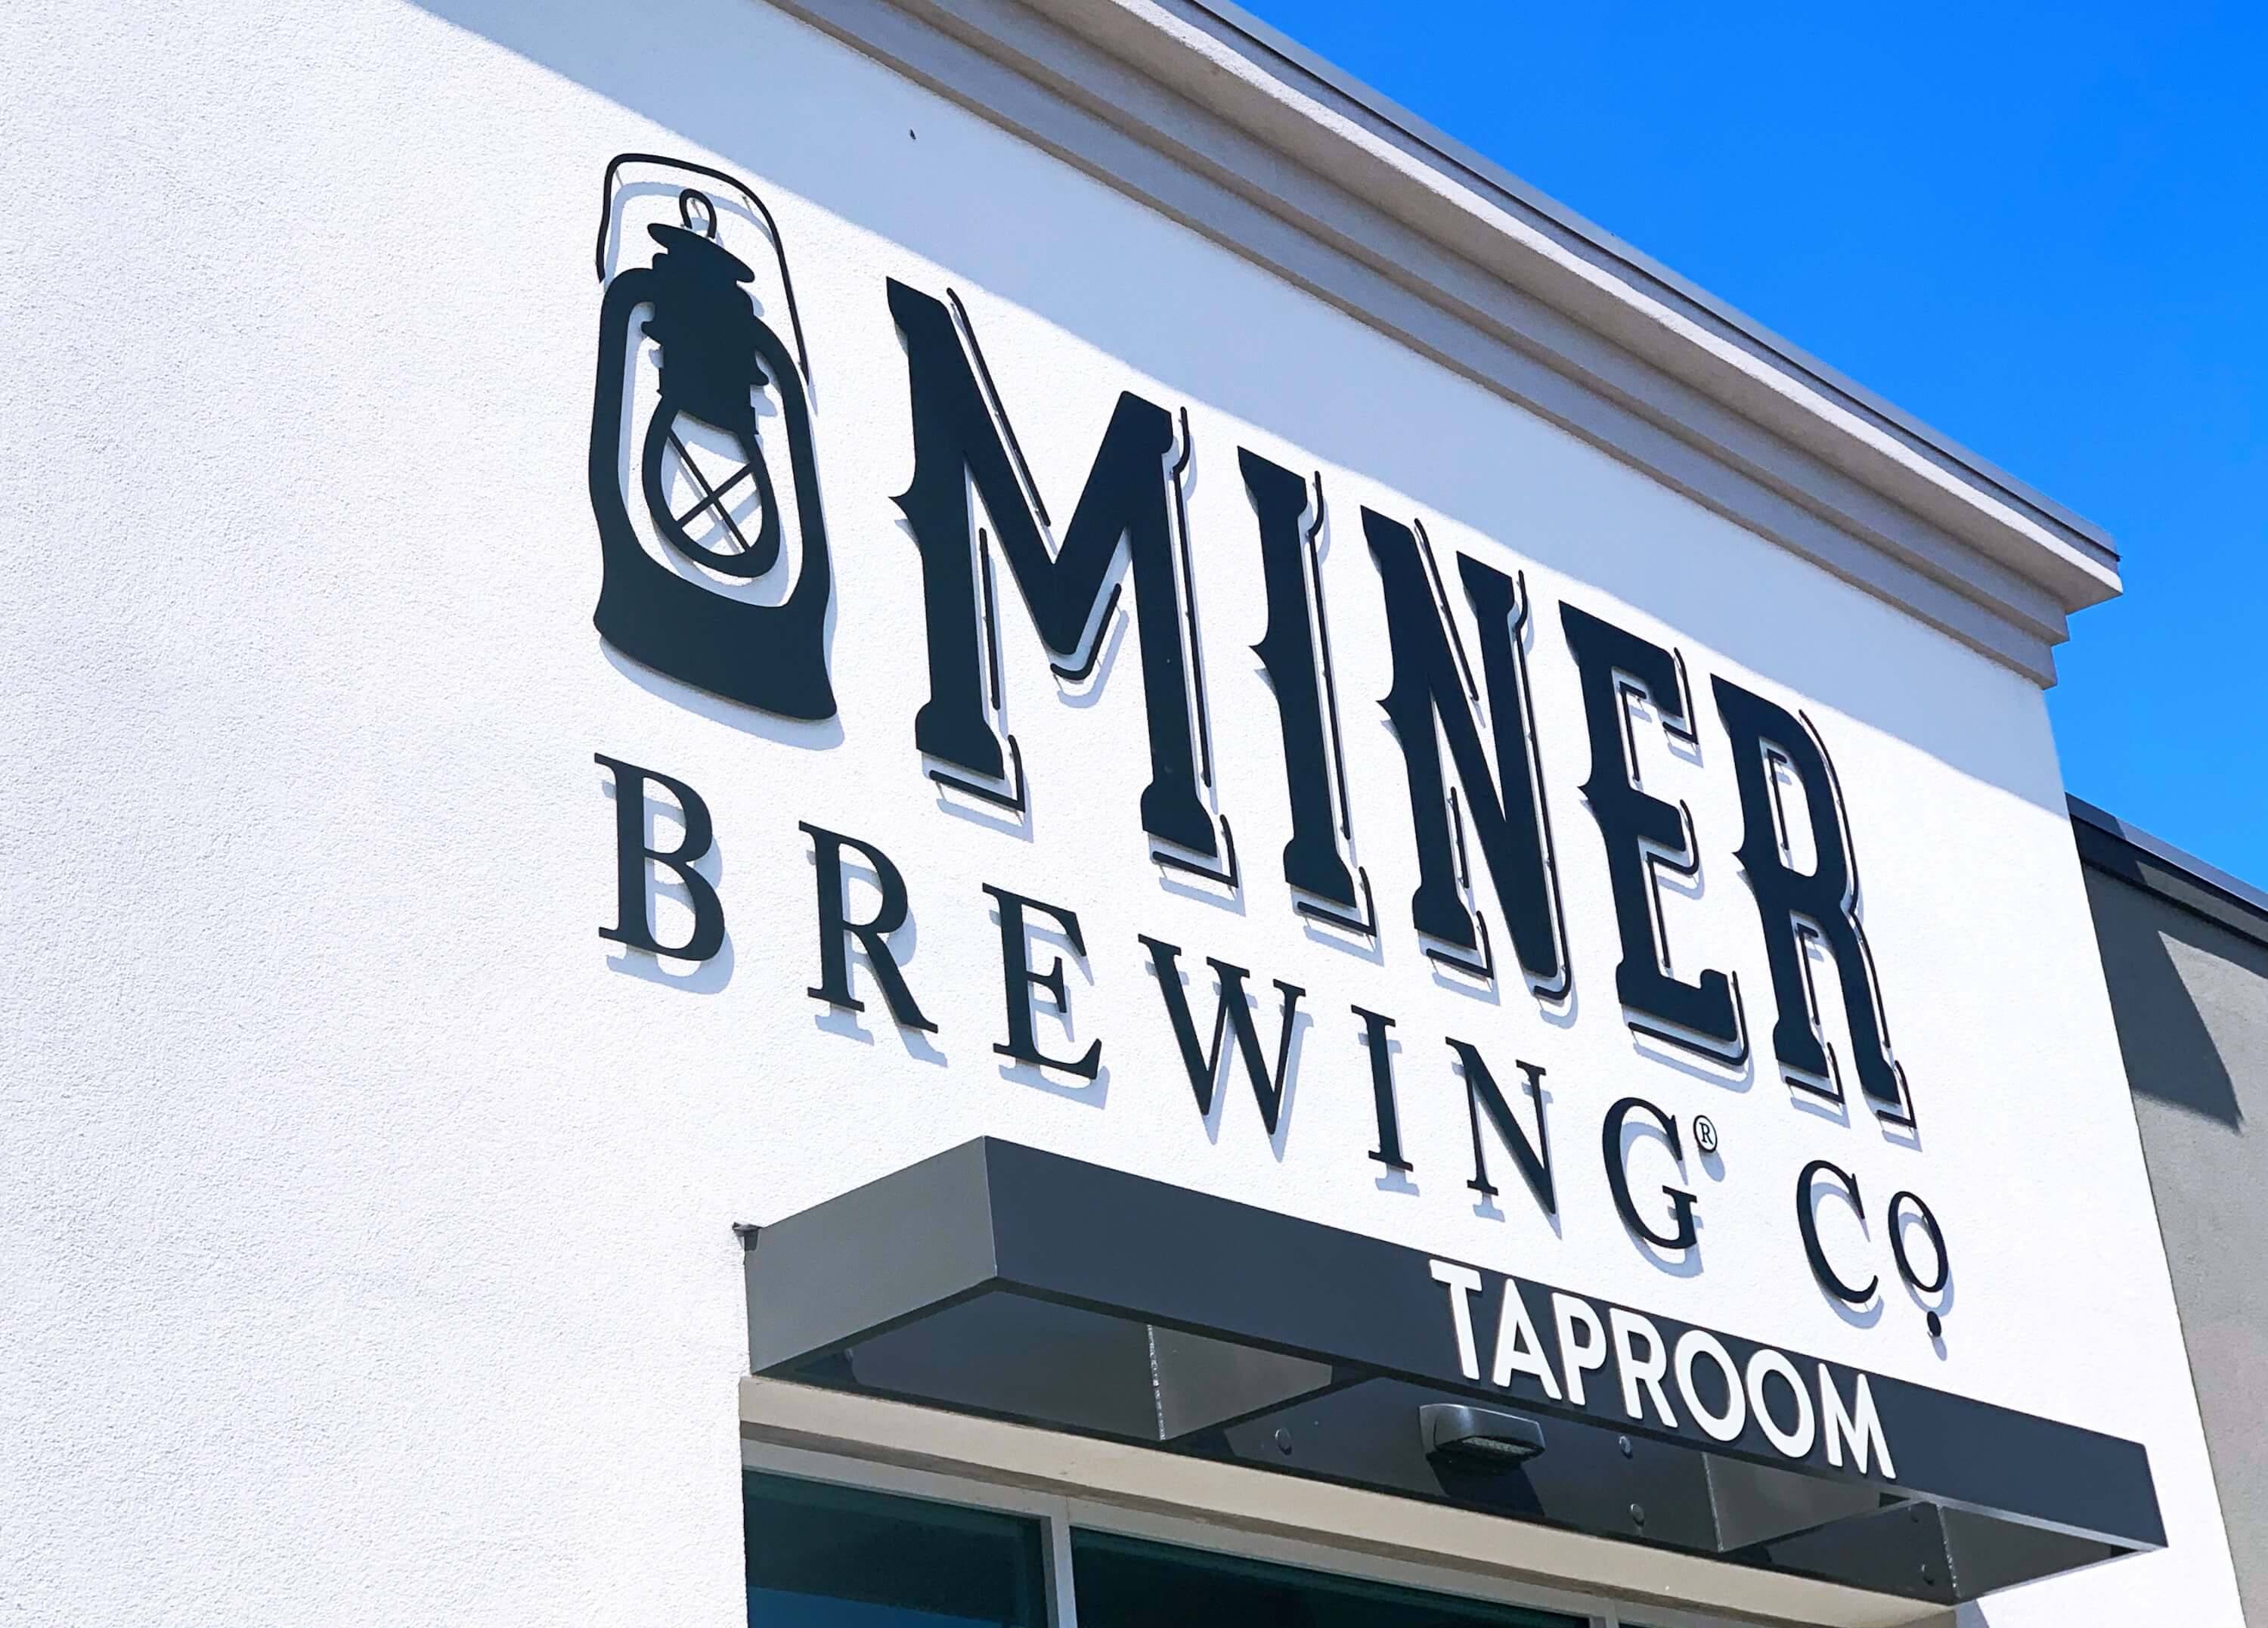 Pick up all your favorite wines and craft beers at Miner Brewing Co. and Prairie Berry Winery Taproom in Sioux Falls.